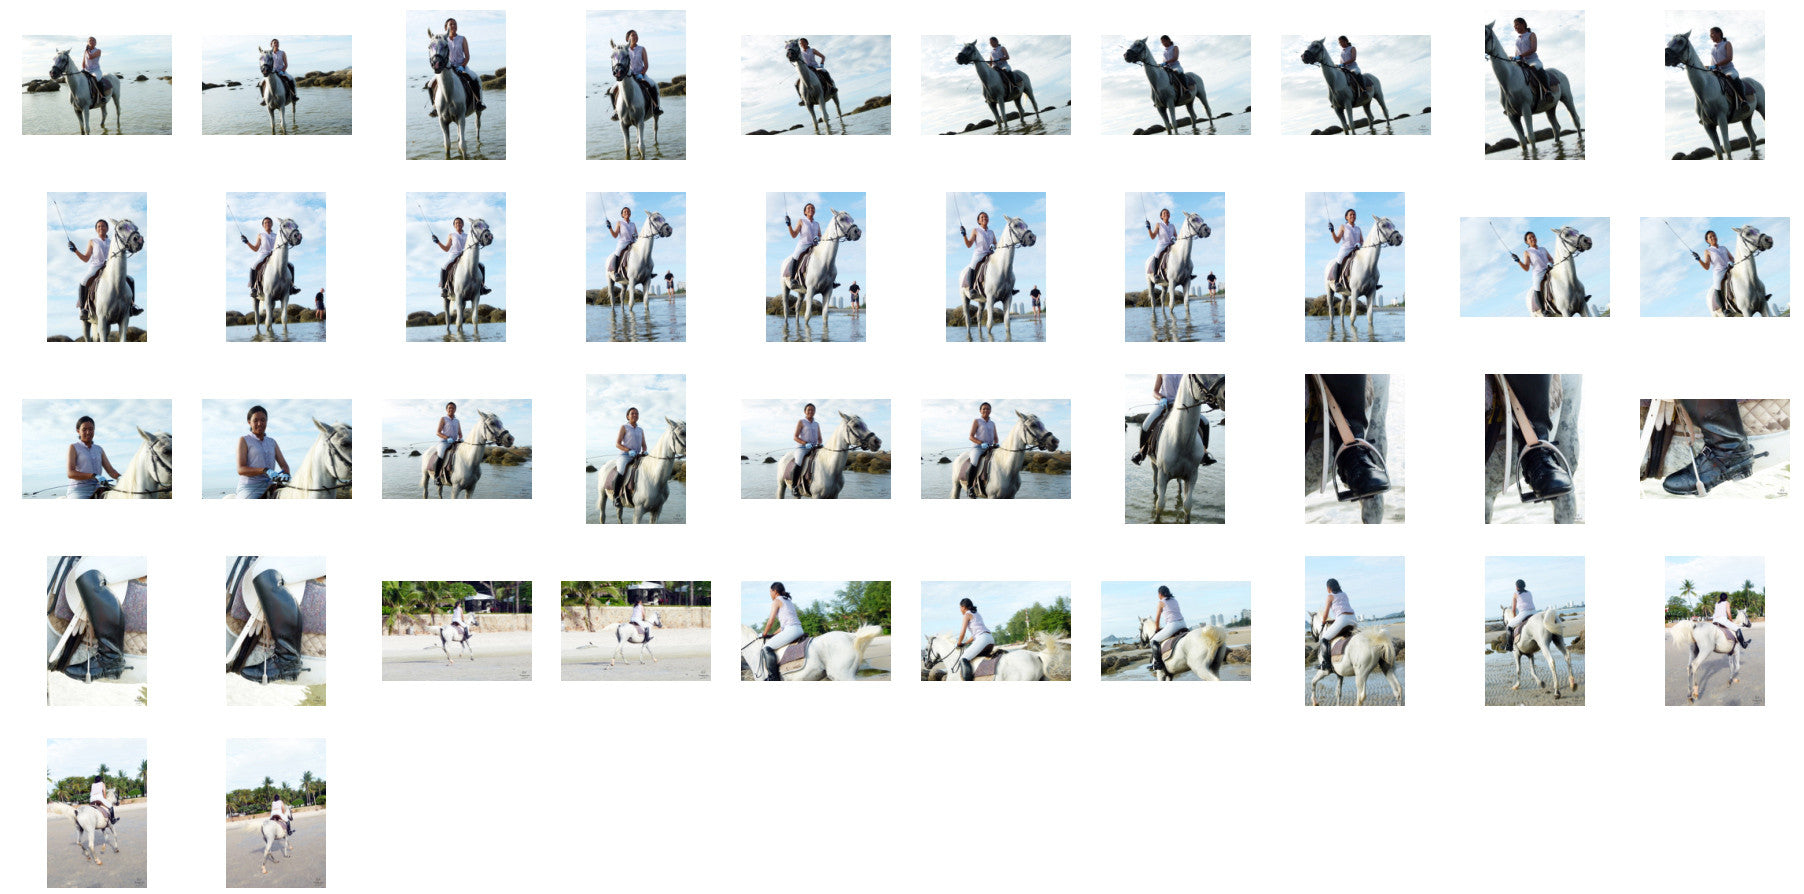 Nam in Jodhpurs Riding with Saddle on White Arabian Horse, Part 5 - Riding.Vision